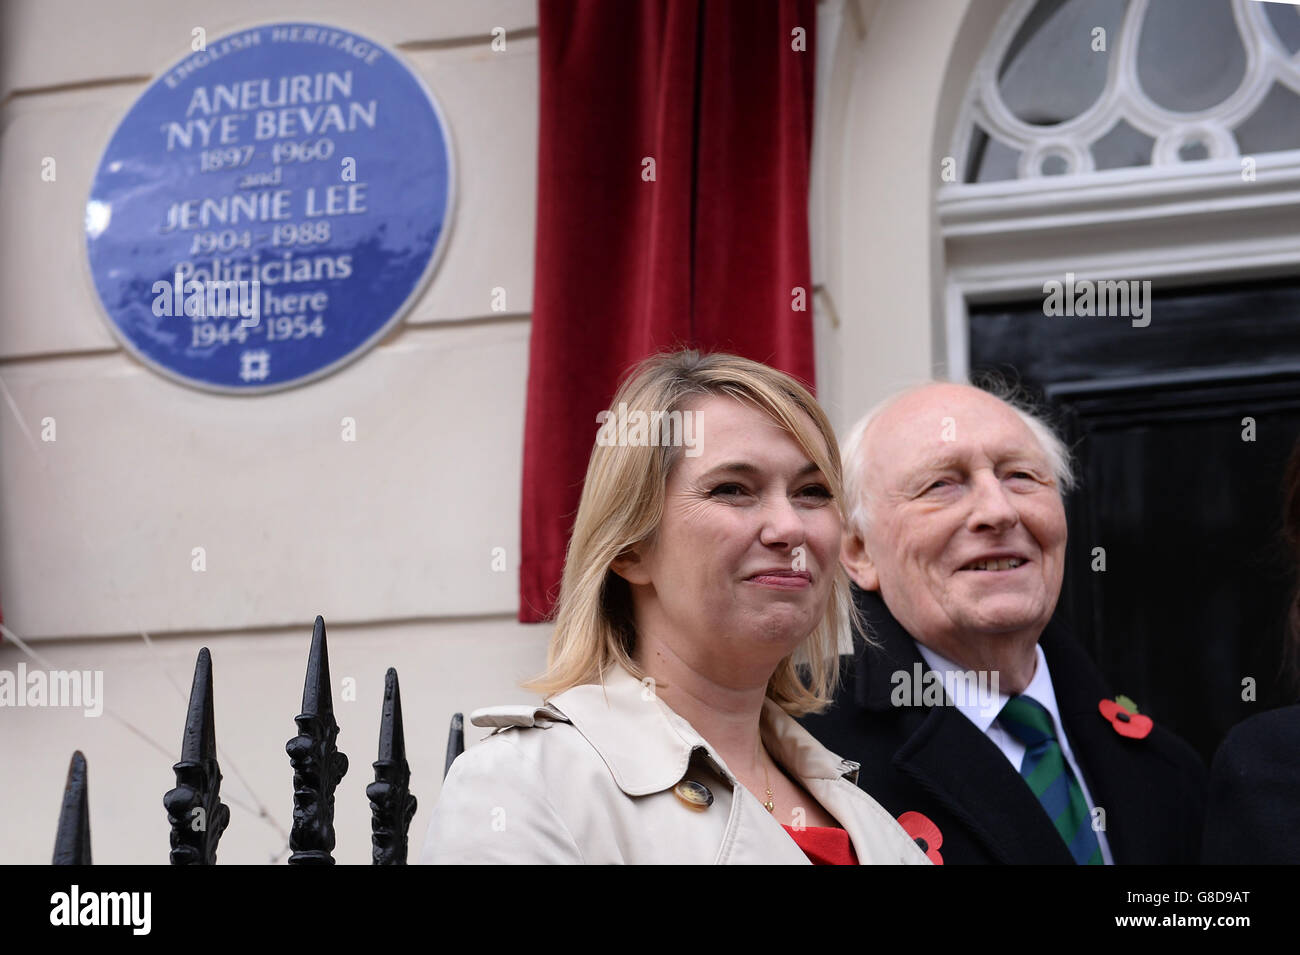 Blue plaque honouring Aneurin Bevan and Jennie Lee - Stock Image